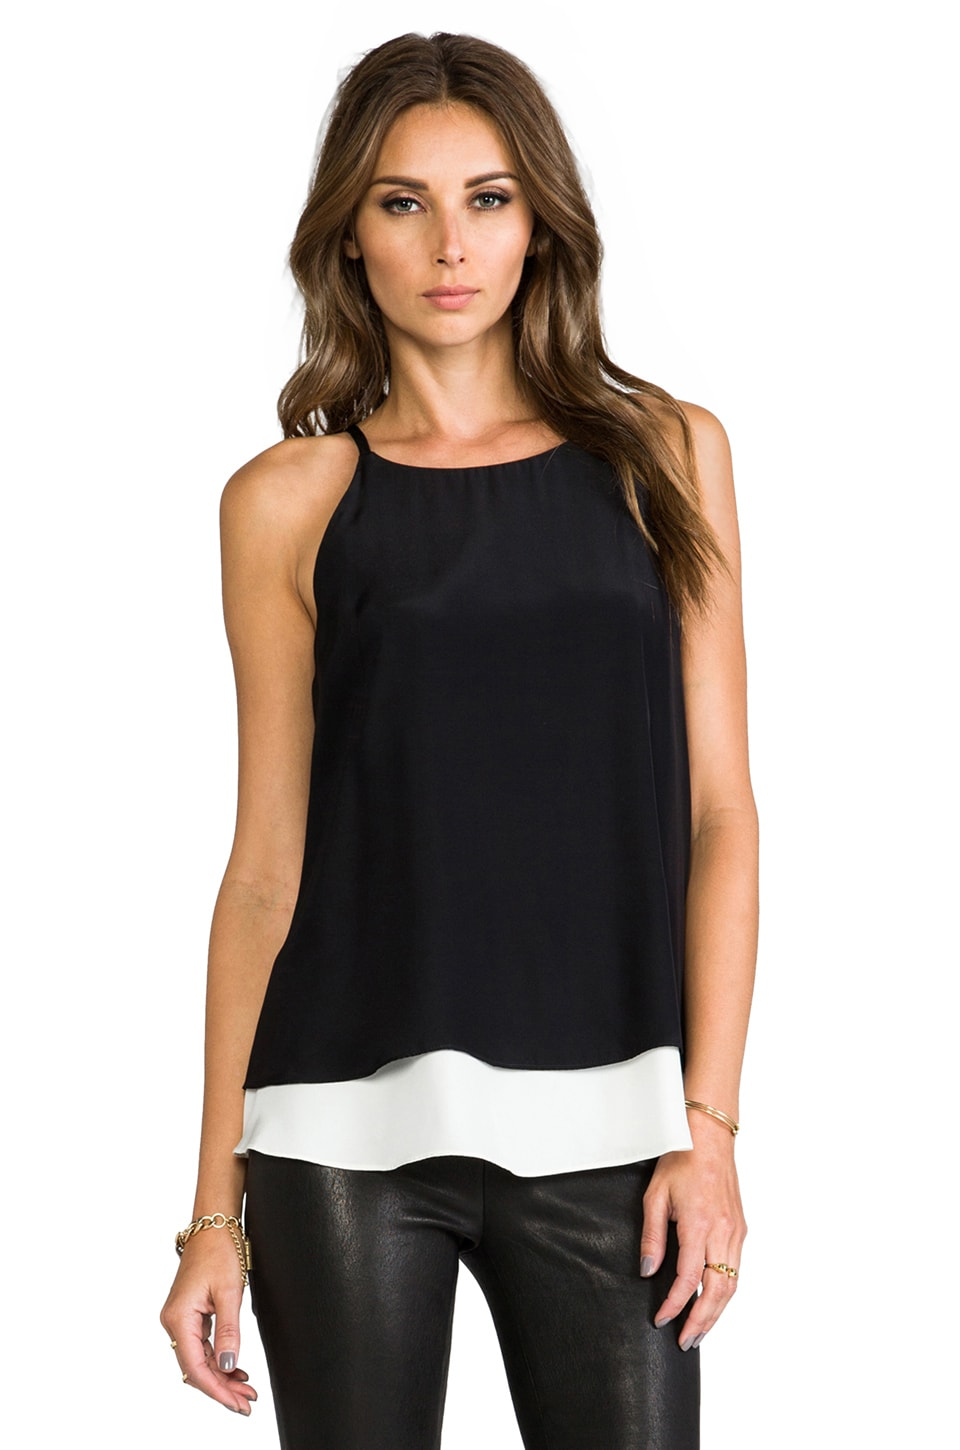 Elizabeth and James Fern Top in Black/Ivory